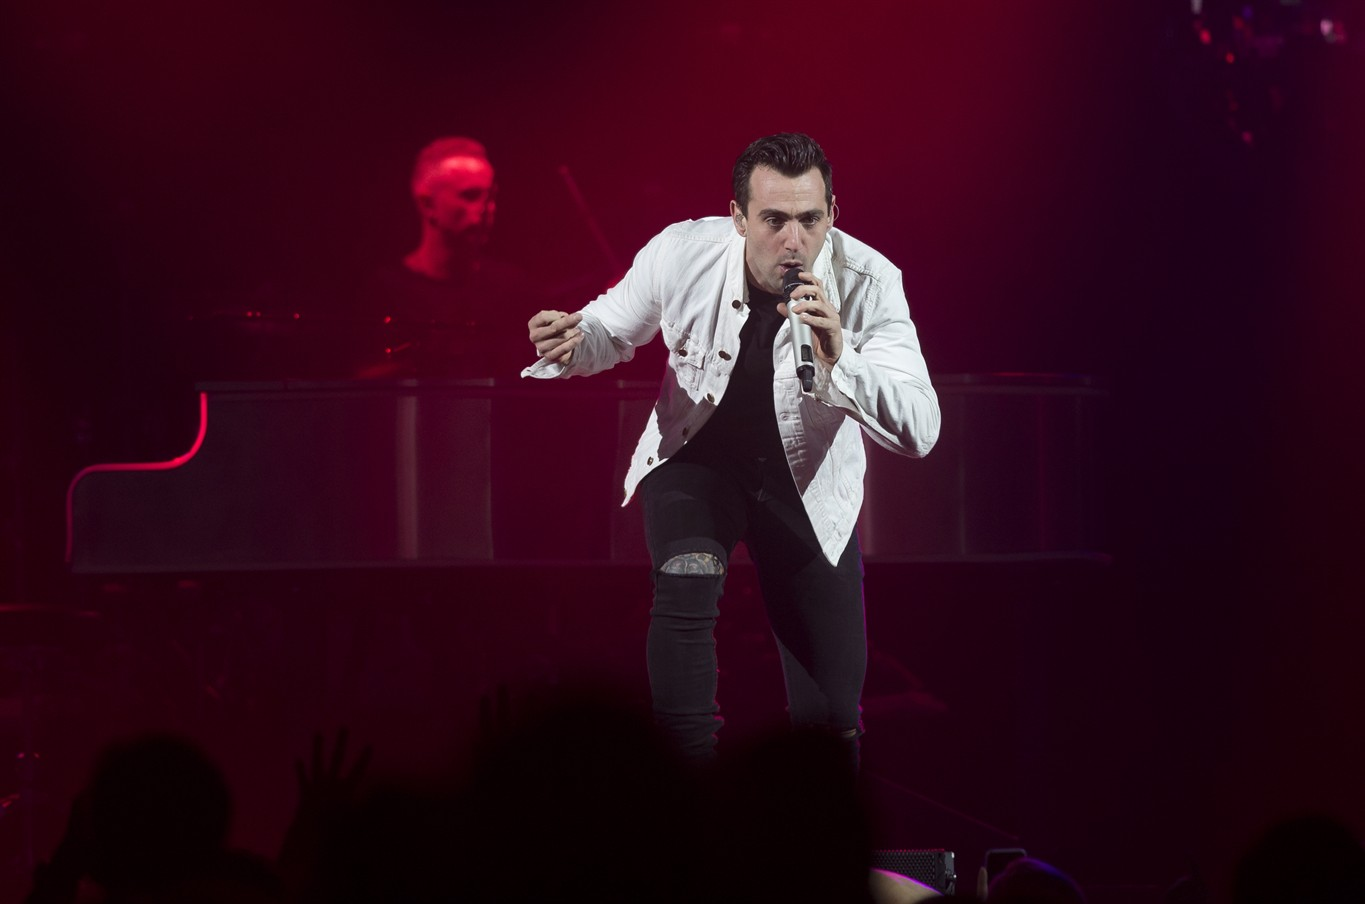 Toronto cops investigating allegations against Hedley frontman Jacob Hoggard